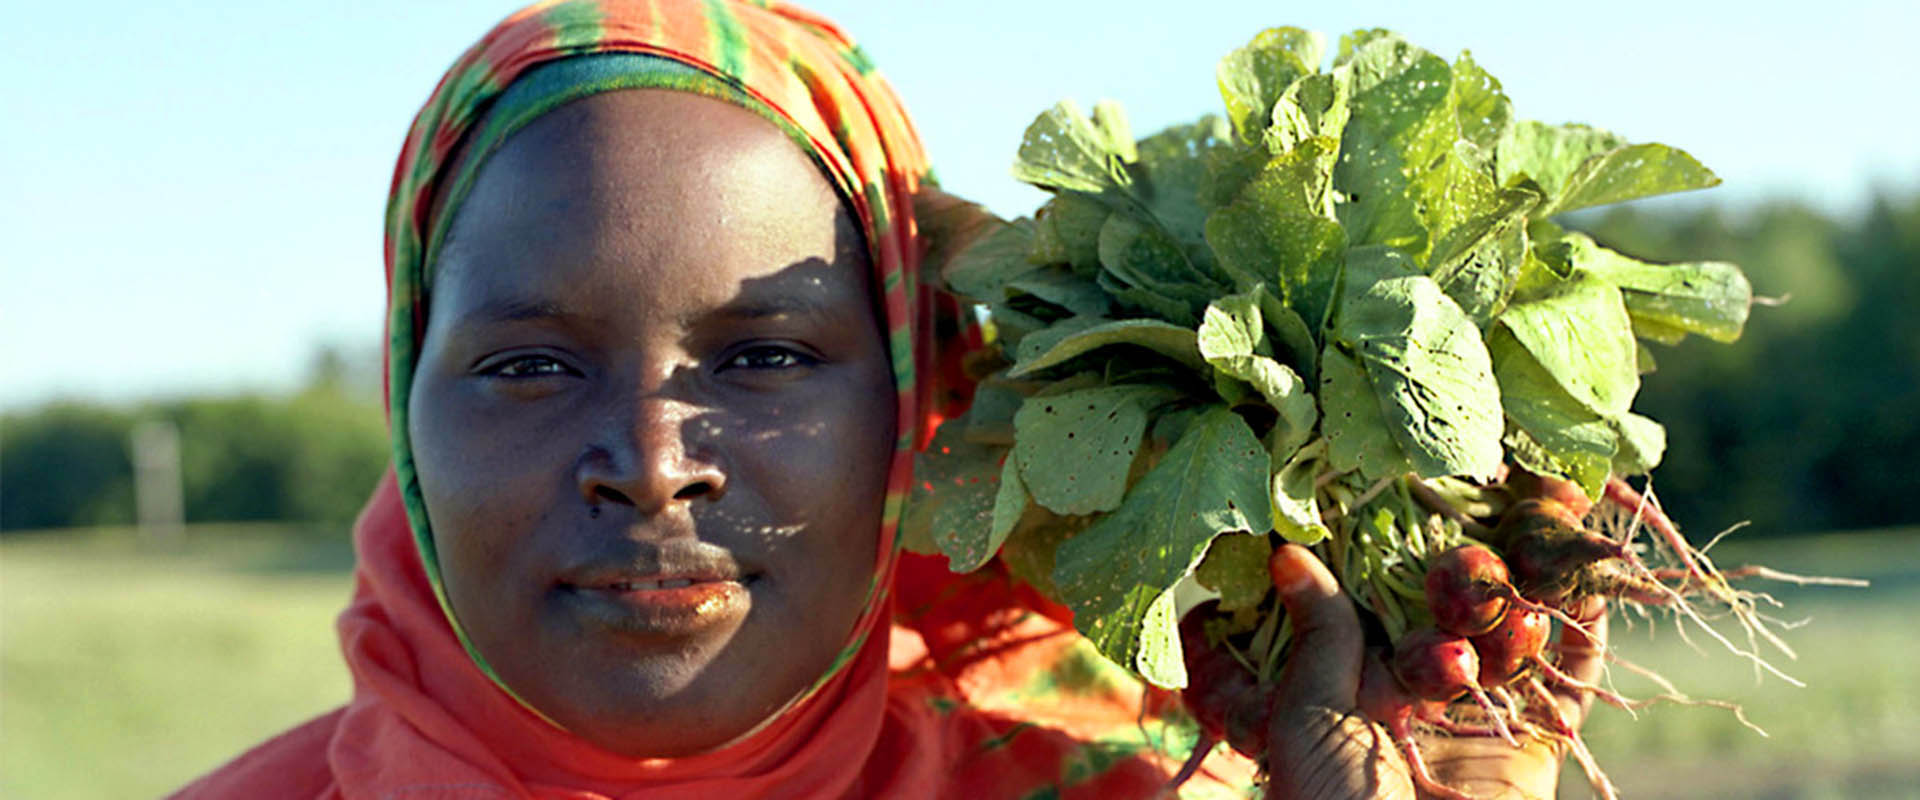 Somali Bantu Farming Project